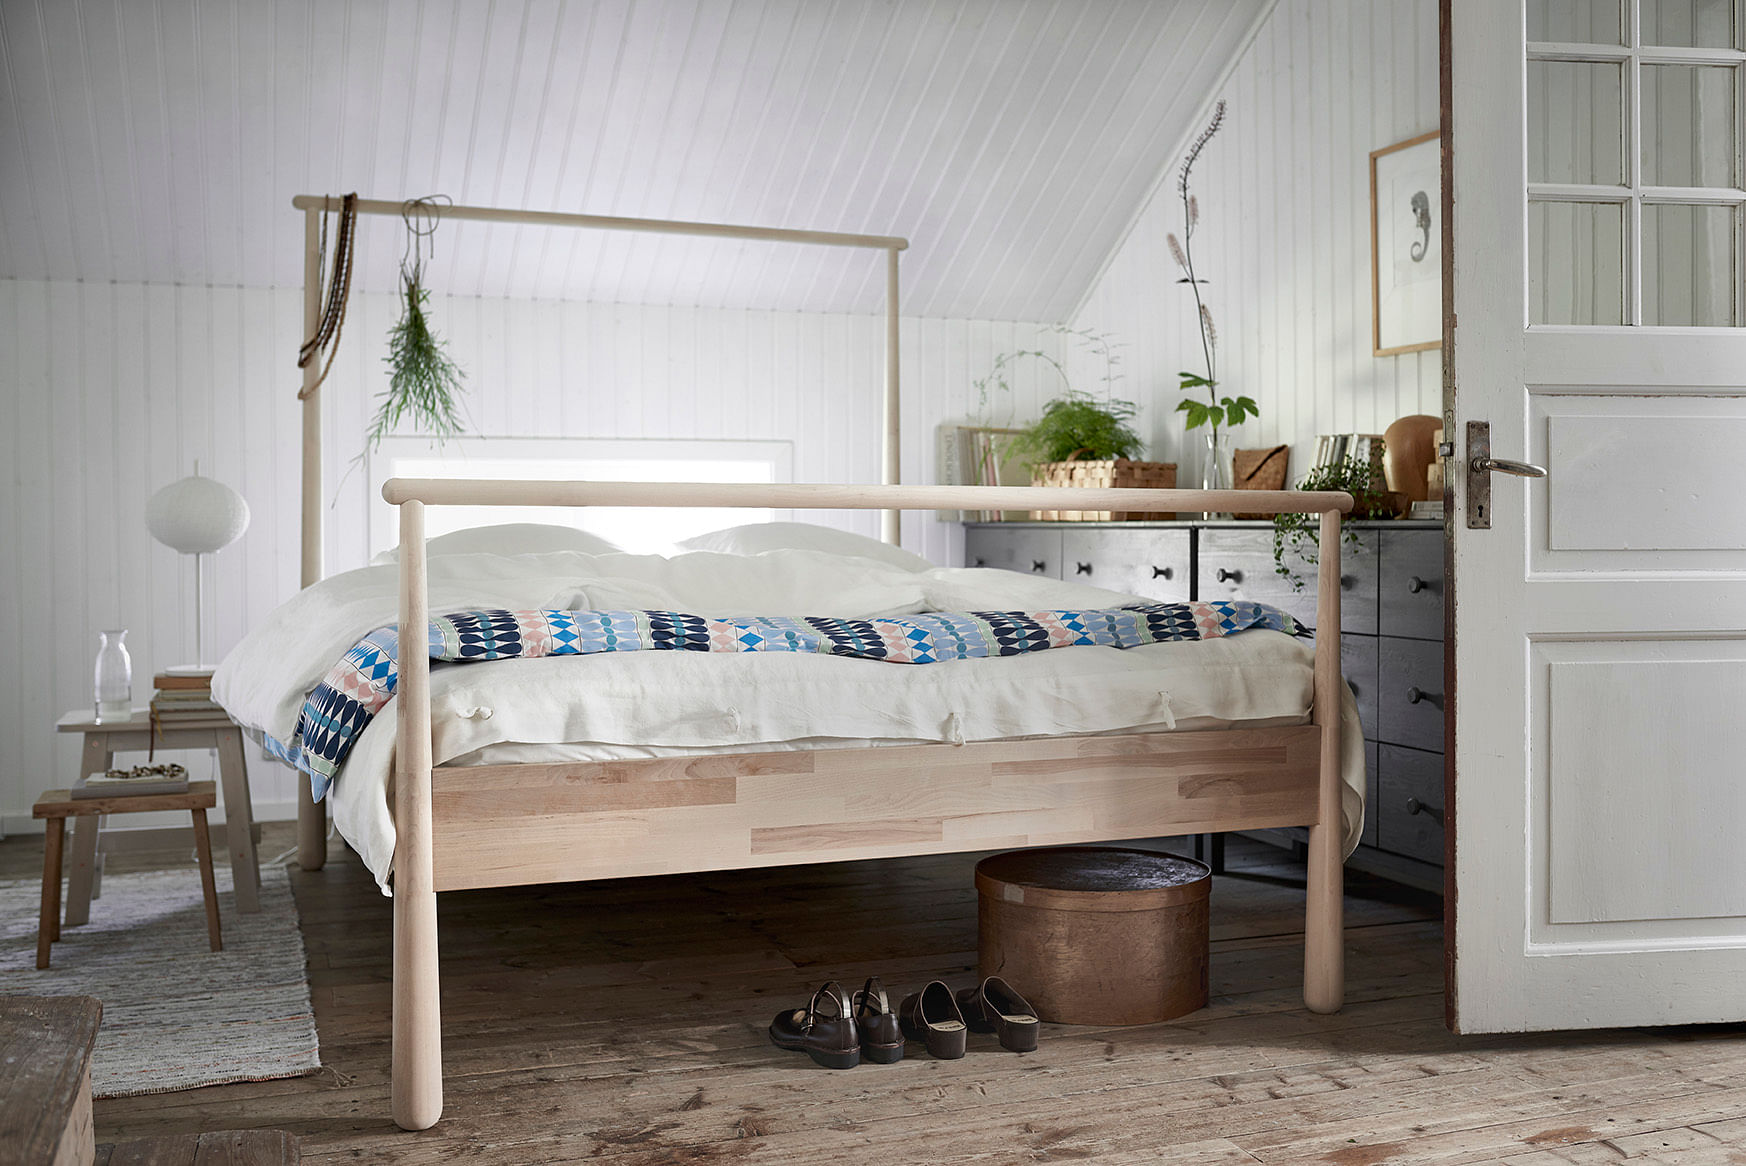 New 5 furnishing items for the Scandi inspired home